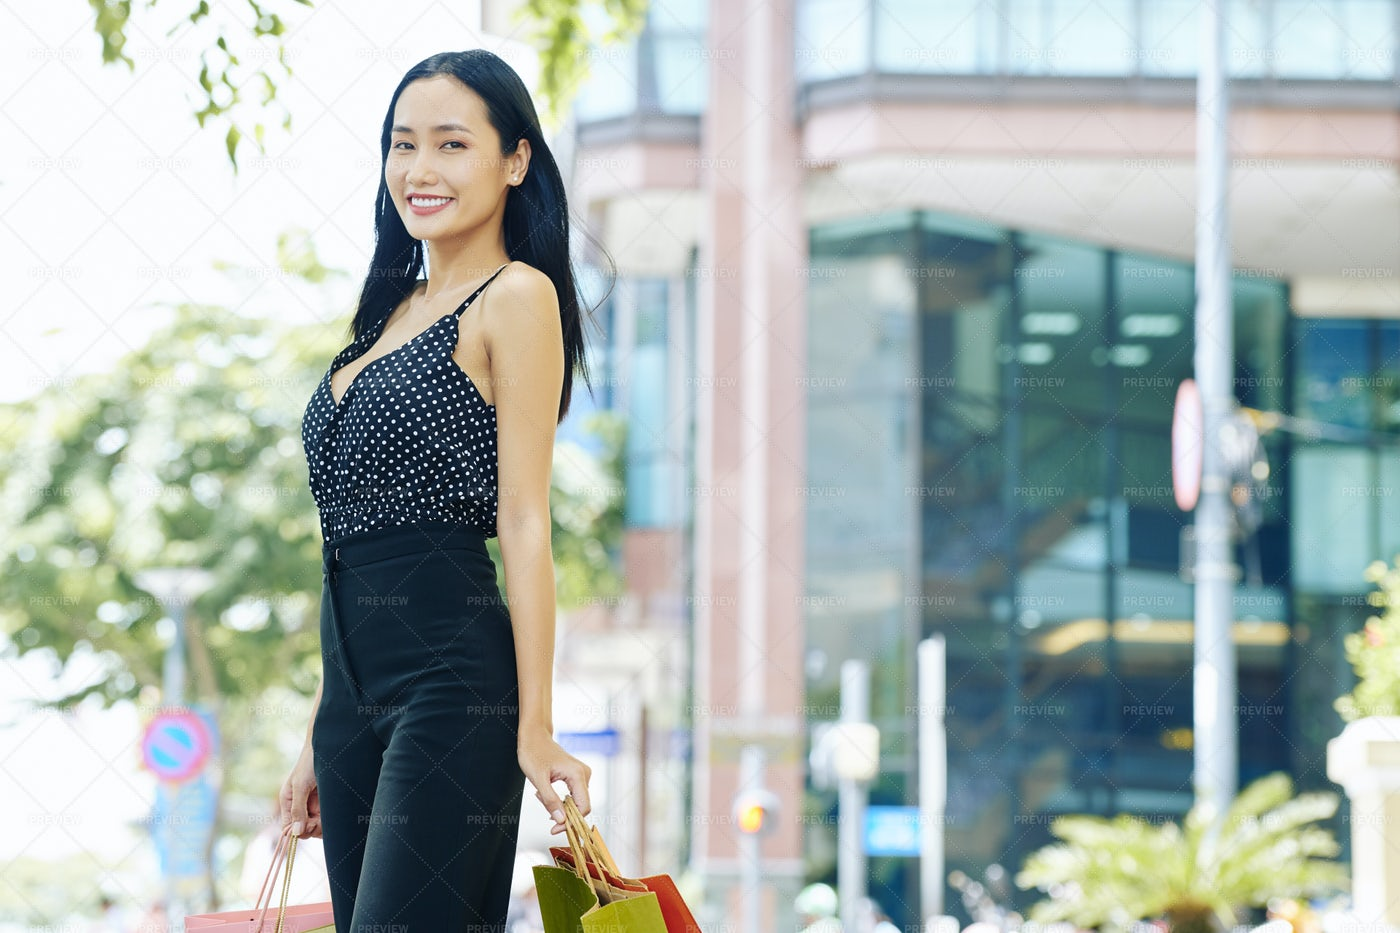 Woman Walking In The City: Stock Photos